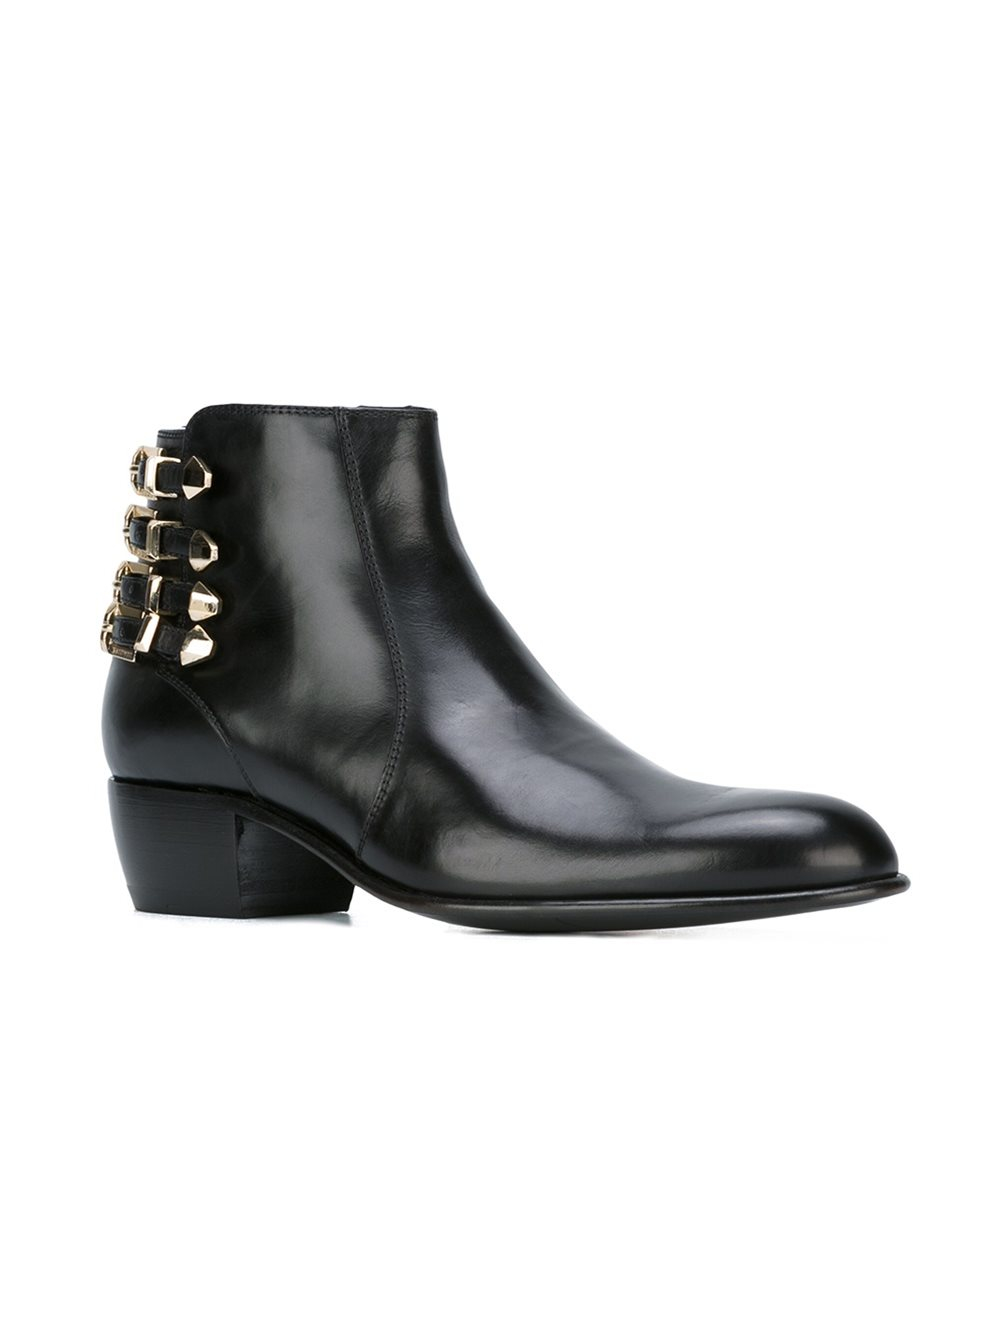 Cesare paciotti Multiple Buckles Ankle Boots in Black   Lyst